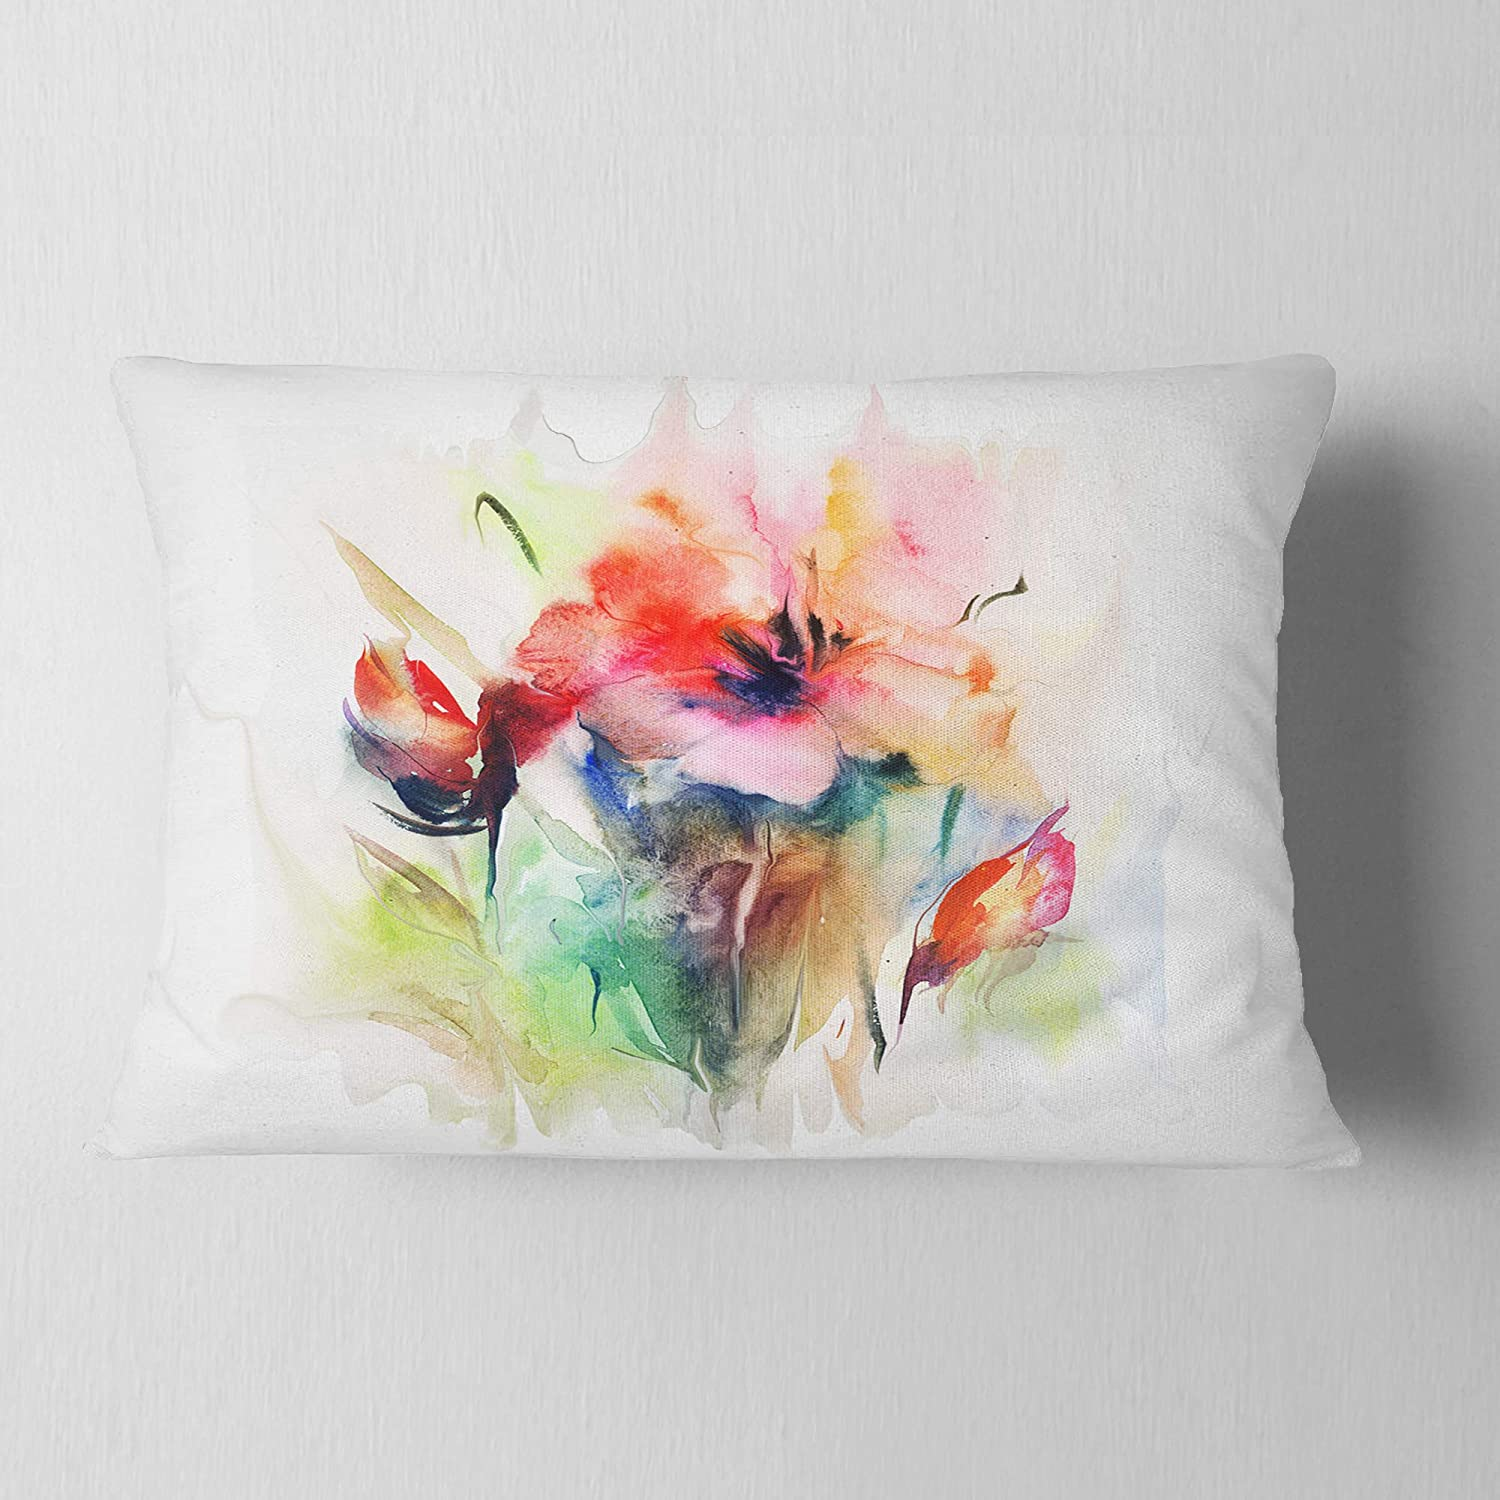 Designart CU6664-12-20 Watercolor Illustration' Abstract Floral Lumbar Cushion Cover for Living Room, Sofa Throw Pillow 12 in. x 20 in. in, Insert Printed On Both Side